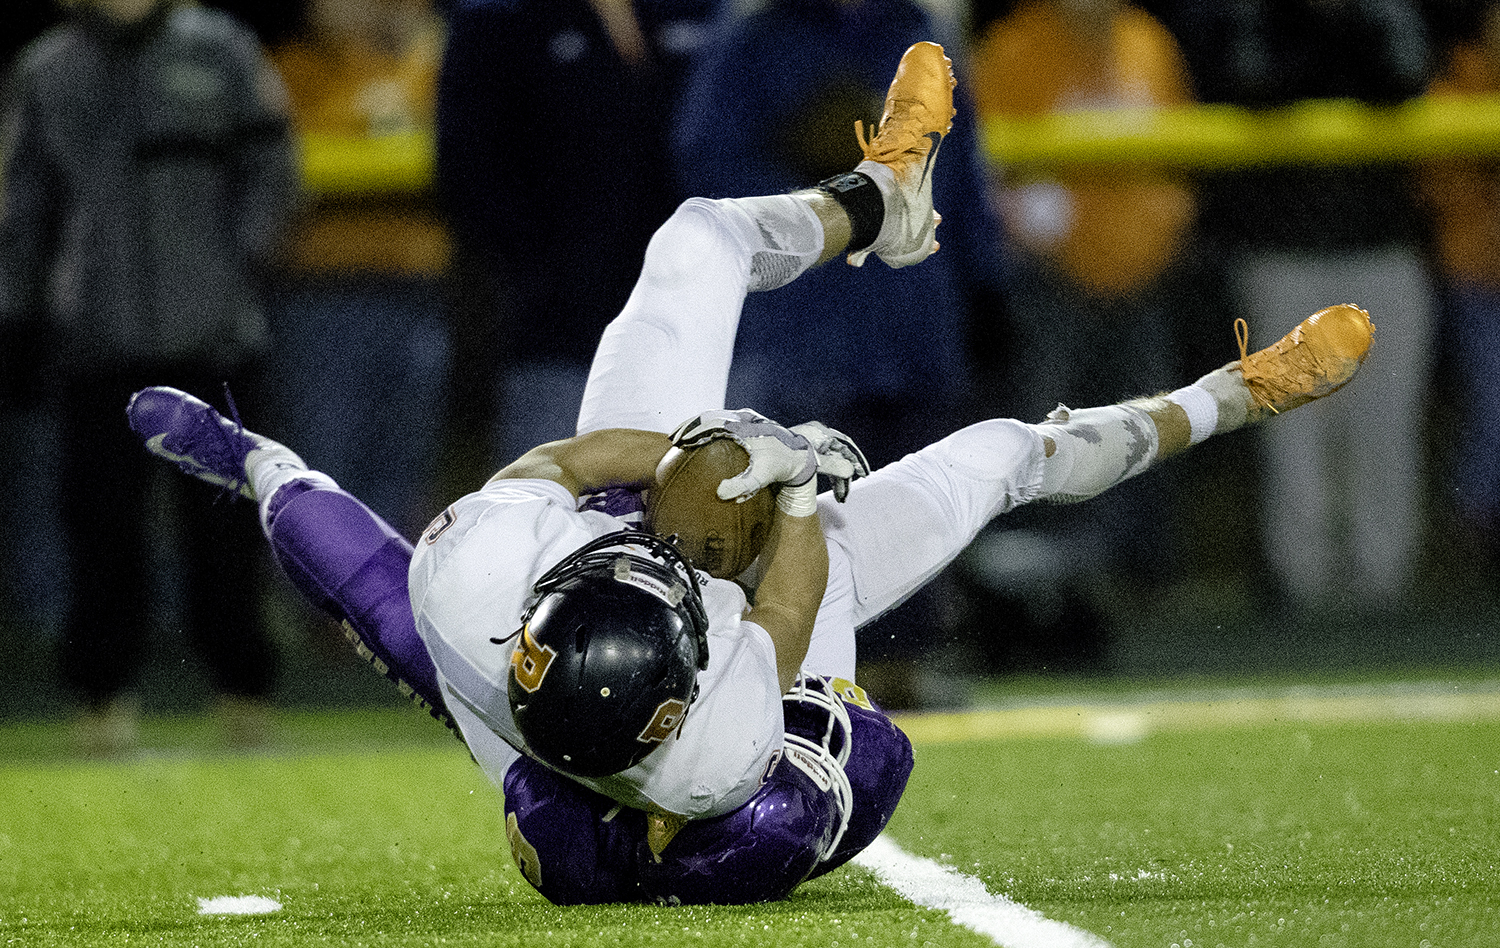 Taylorville's Kyle Durbin brings down Rochester's Cade Eddington in the first half during the Class 4A quarterfinals in Taylorville Saturday, Nov. 10, 2018. [Ted Schurter/The State Journal-Register]